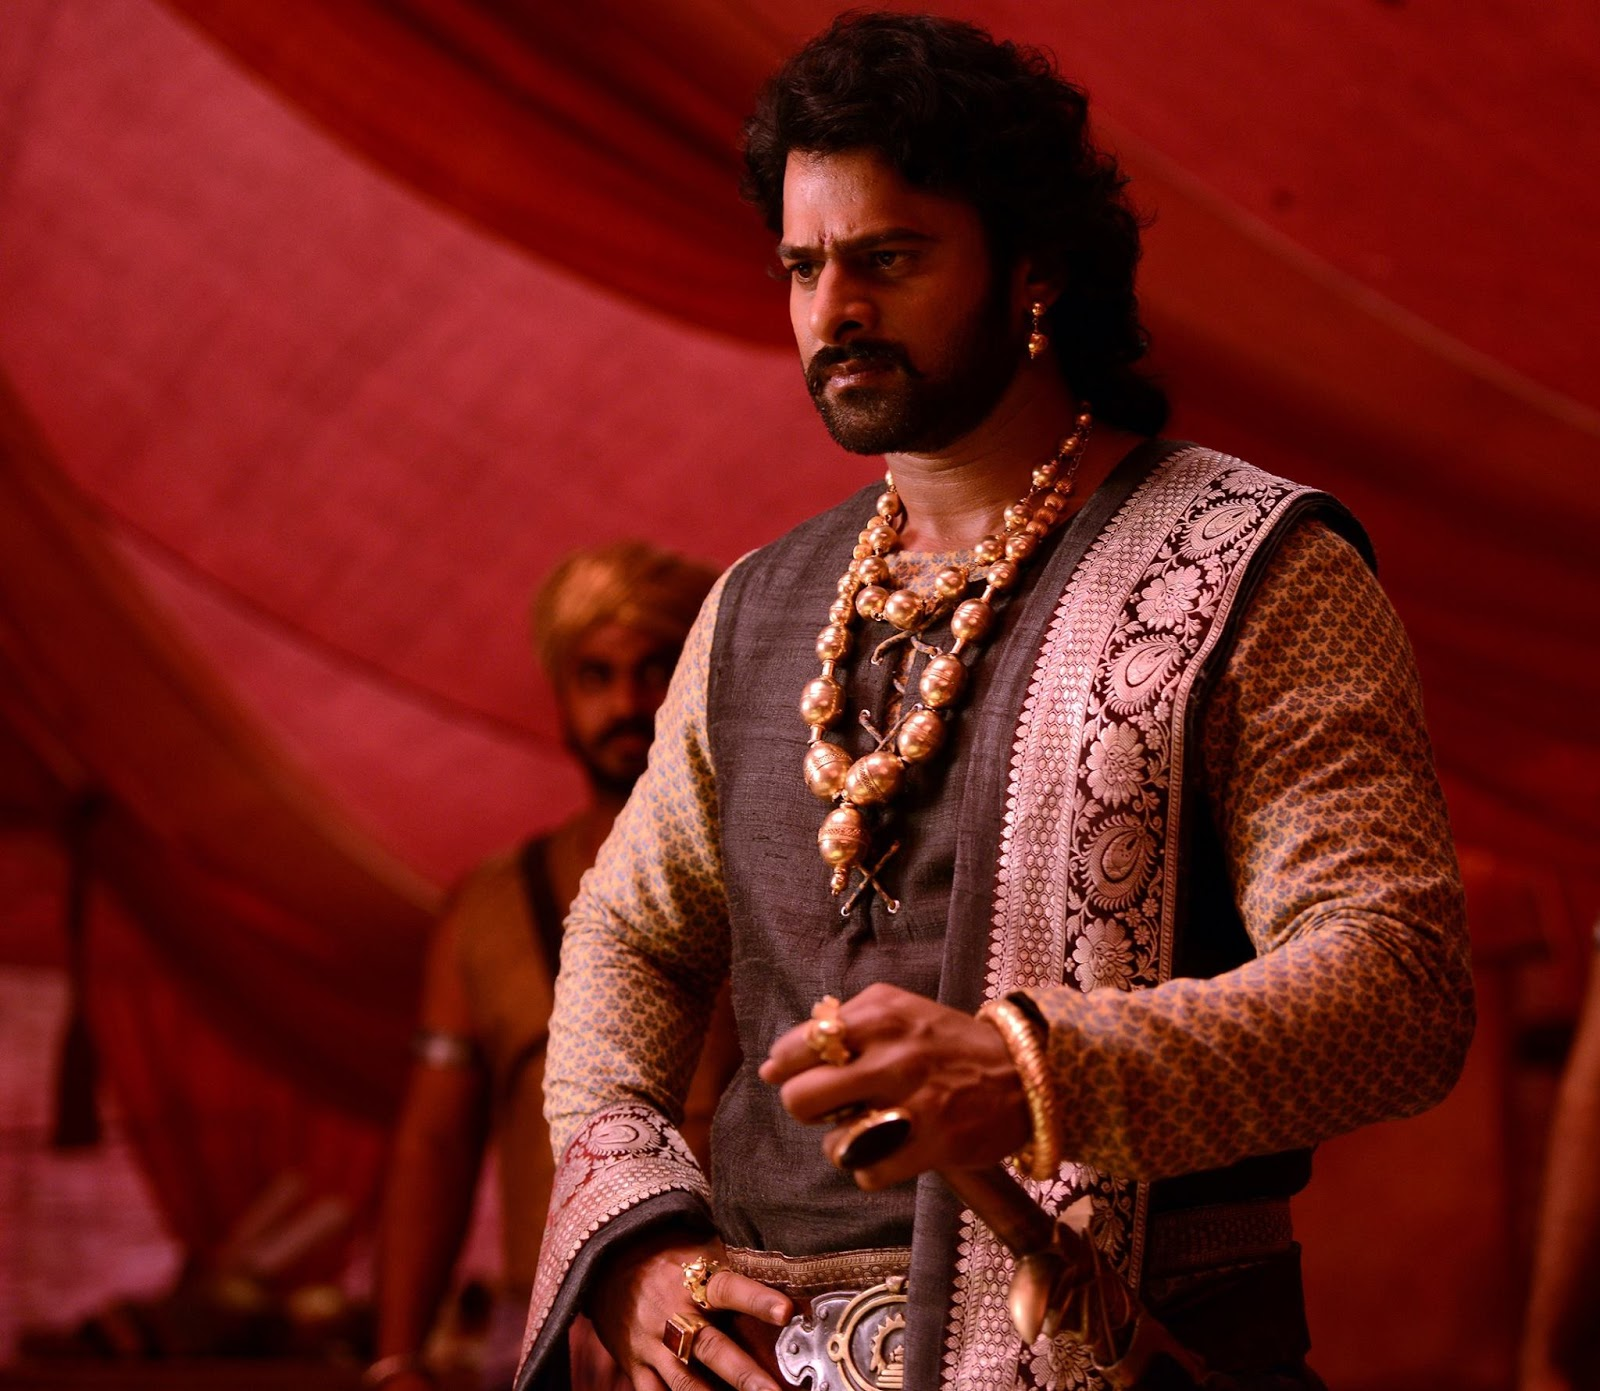 prabhasmyhero blog: baahubali new high definition stills (no watermarks)